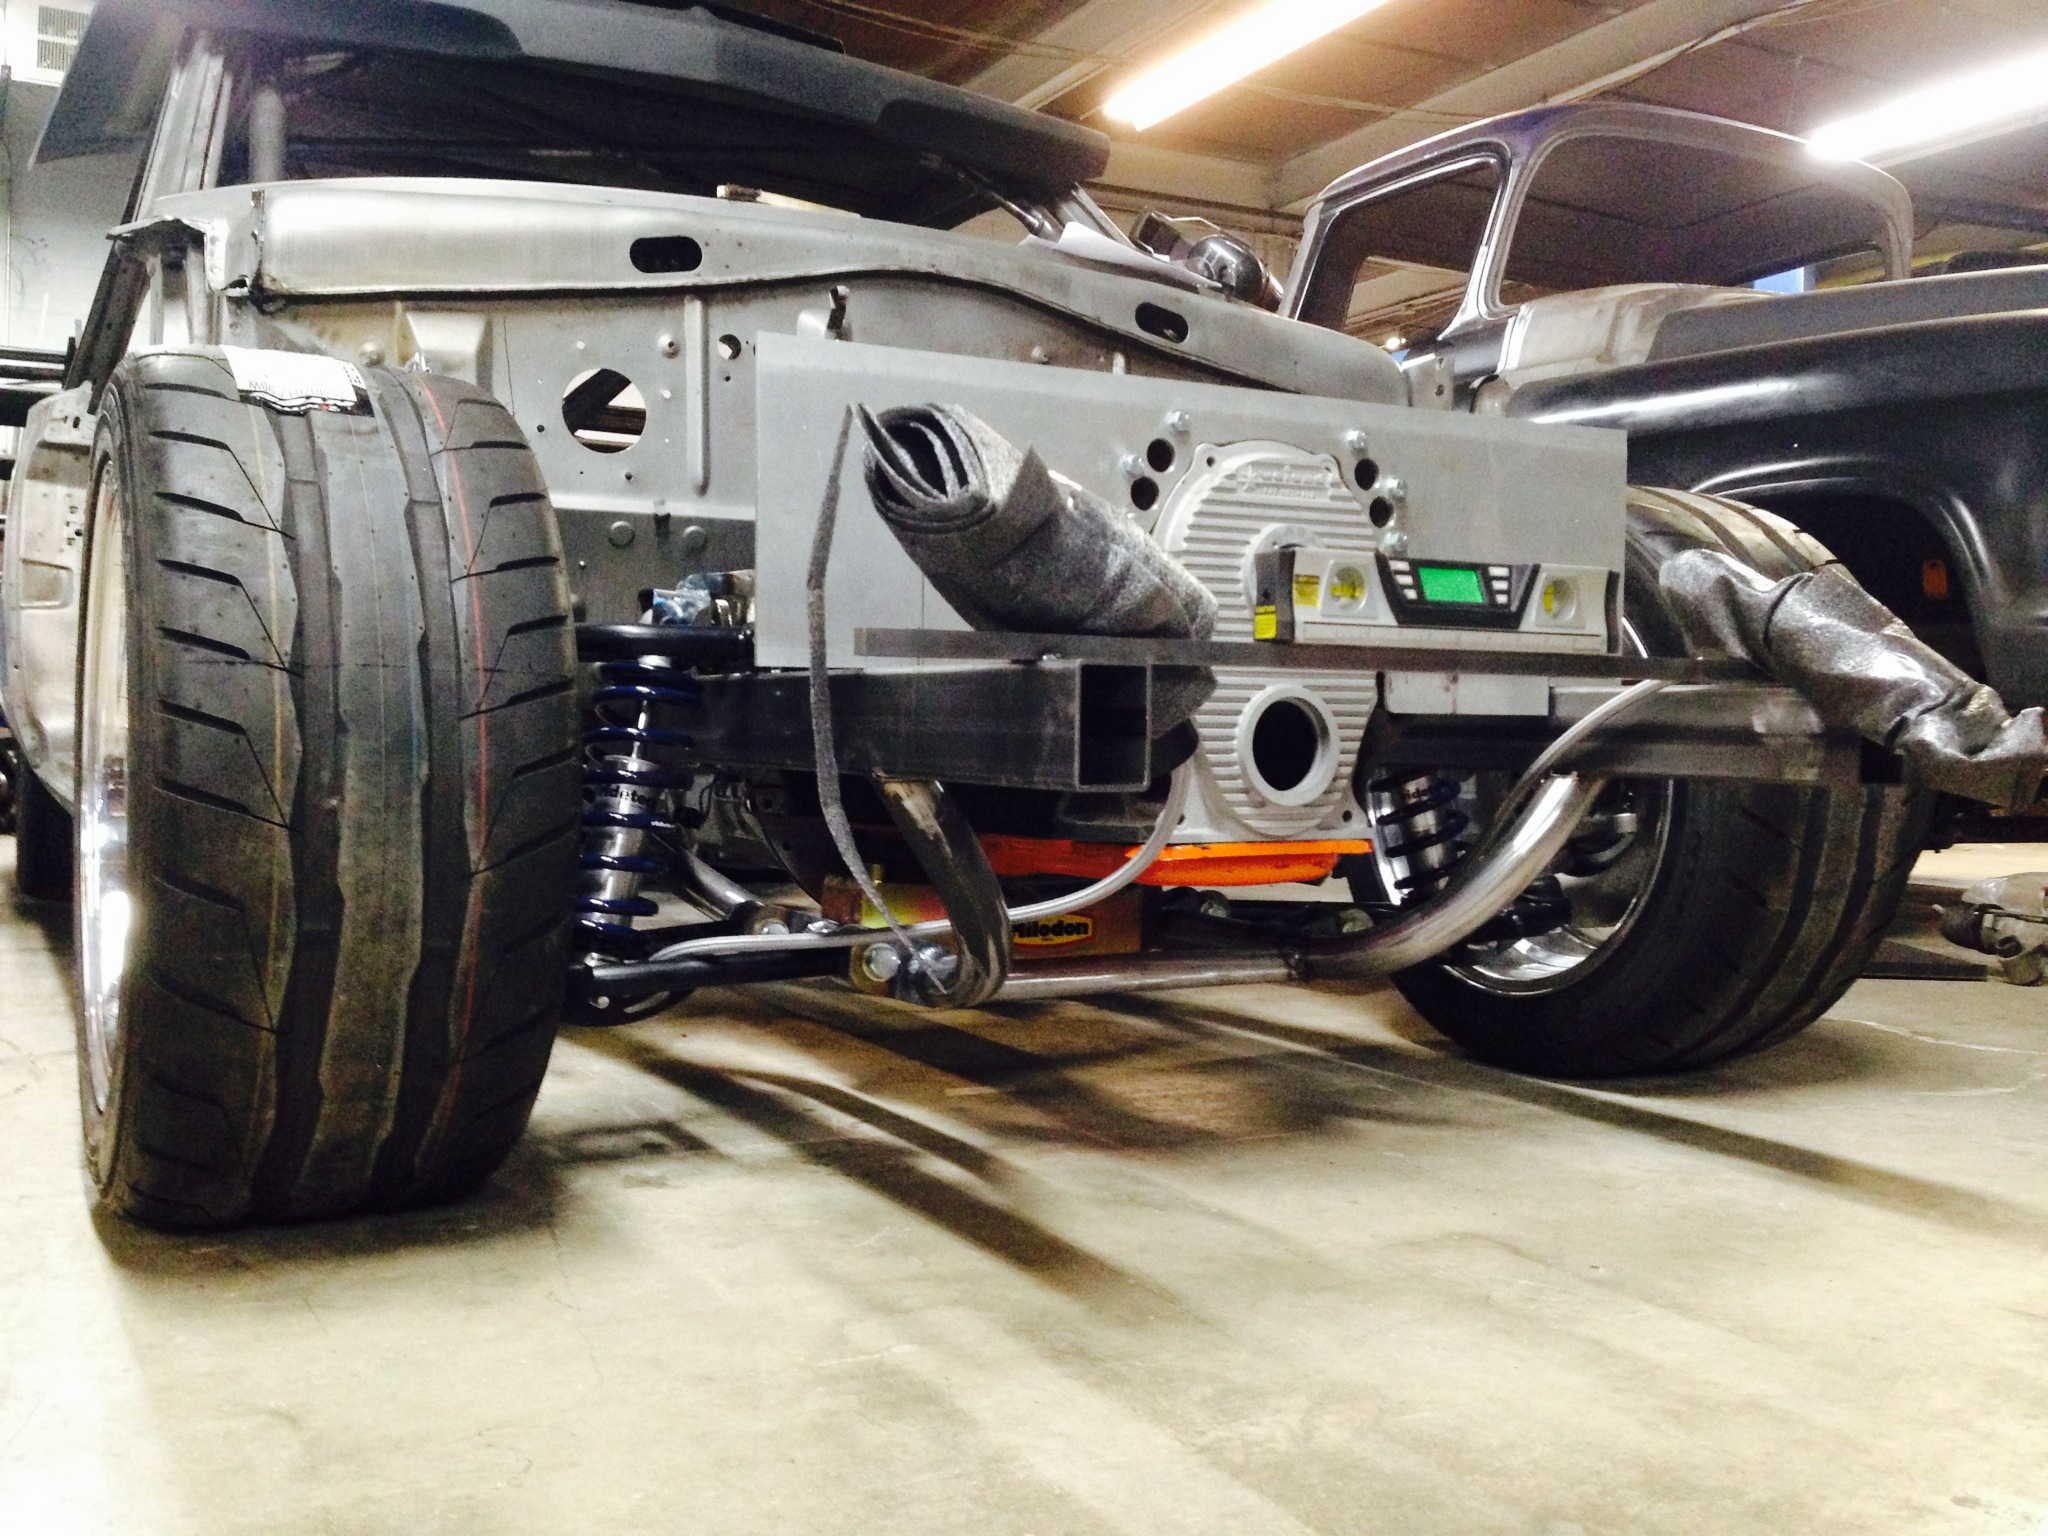 Project Violent Valiant Update: The Front Suspension Starts To Come Together With Fabrication And RideTech Parts